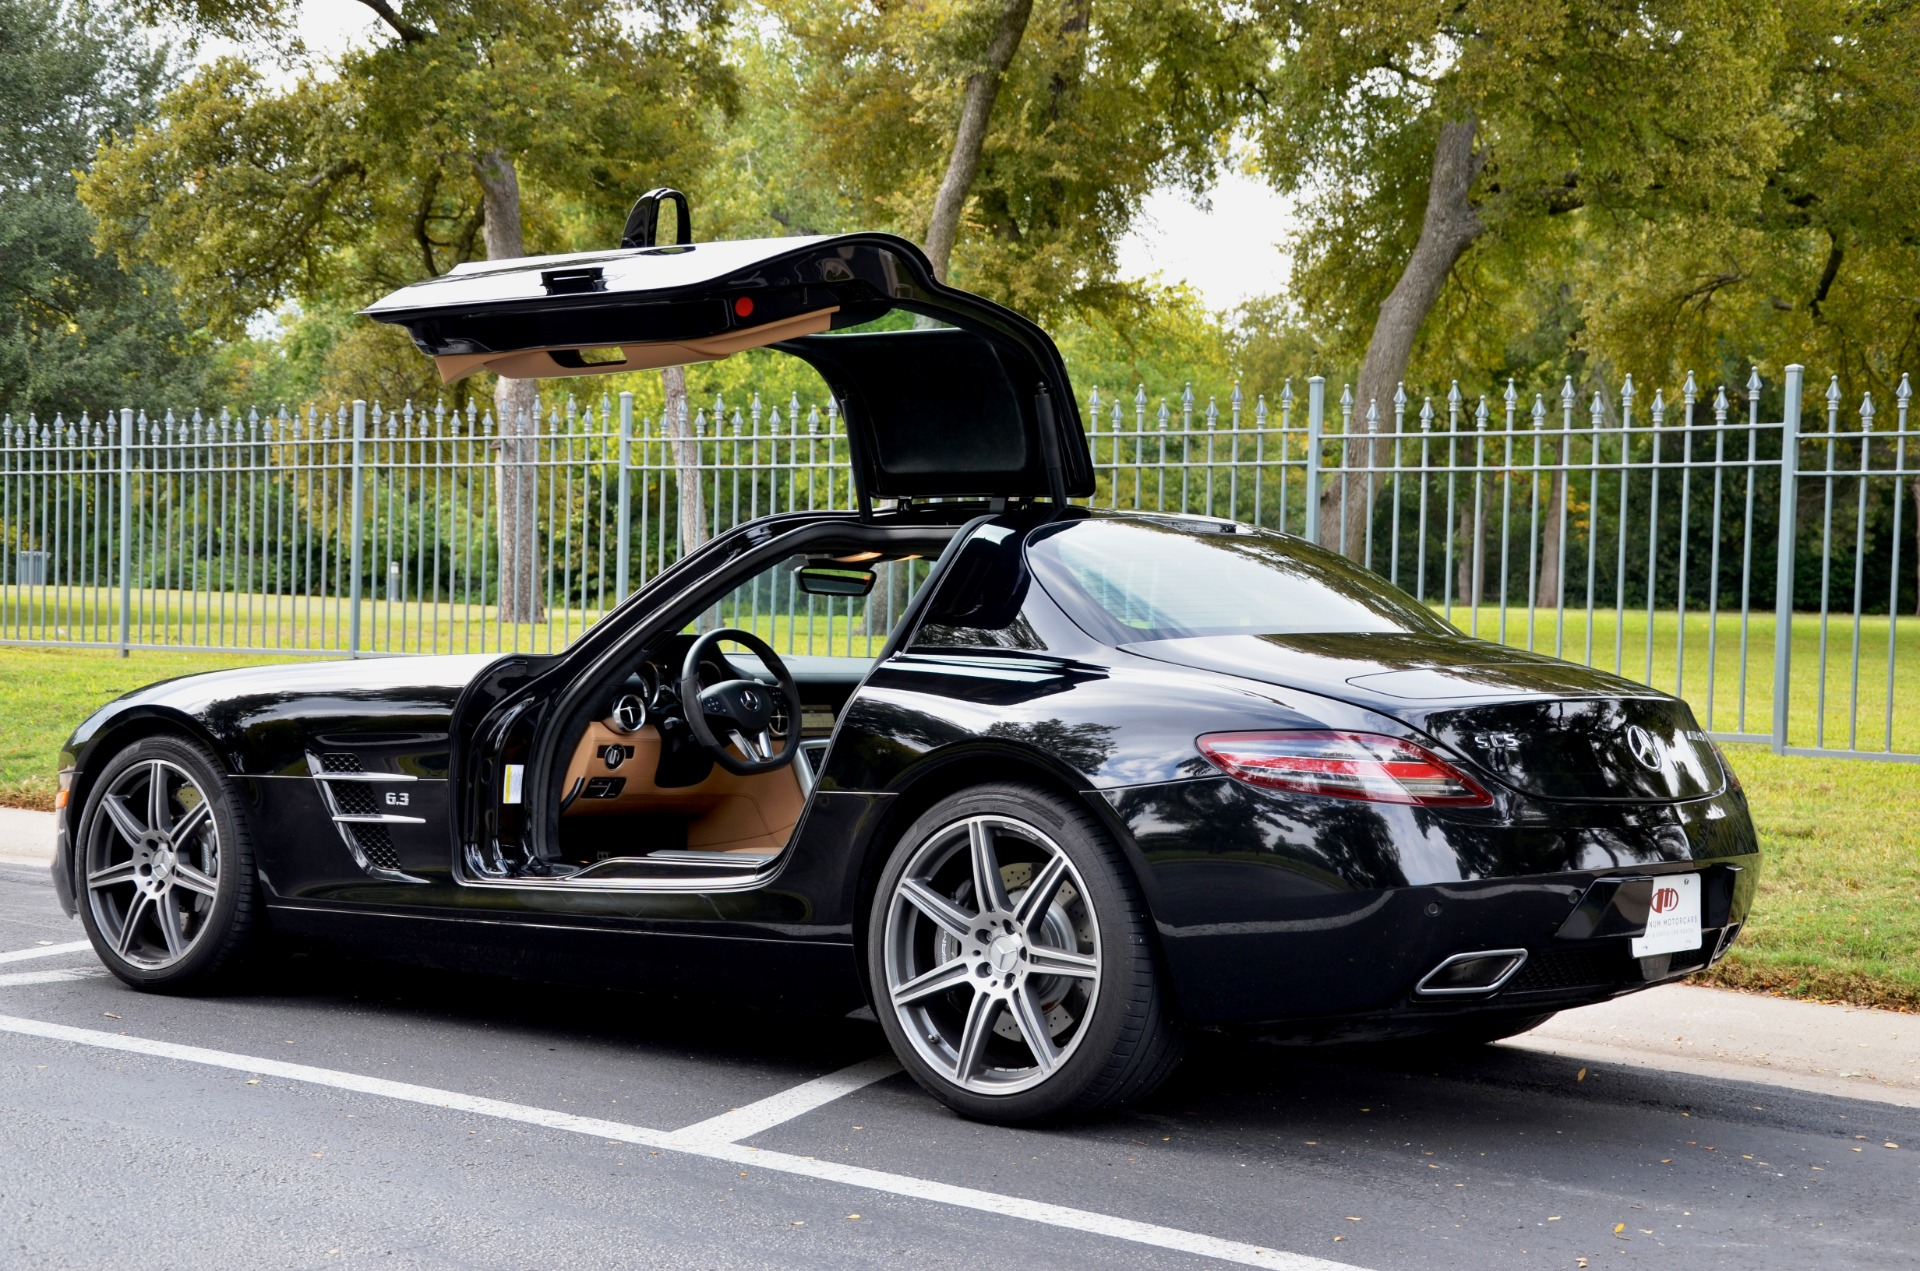 2012 Mercedes-Benz SLS AMG for sale Sold Platinum Motorcars in Ft Worth TX 1